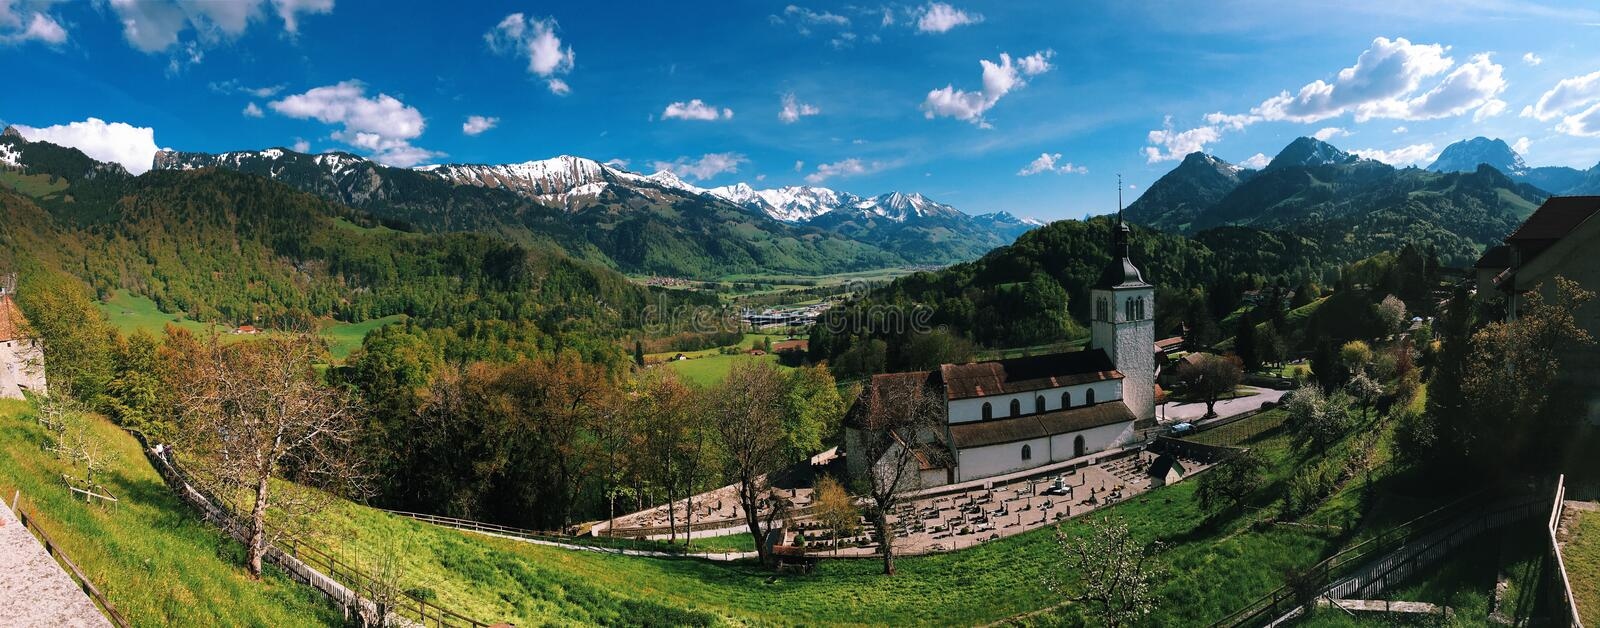 Download Gruyères panorama stock photo. Image of outdoors, gruyeres - 71017846